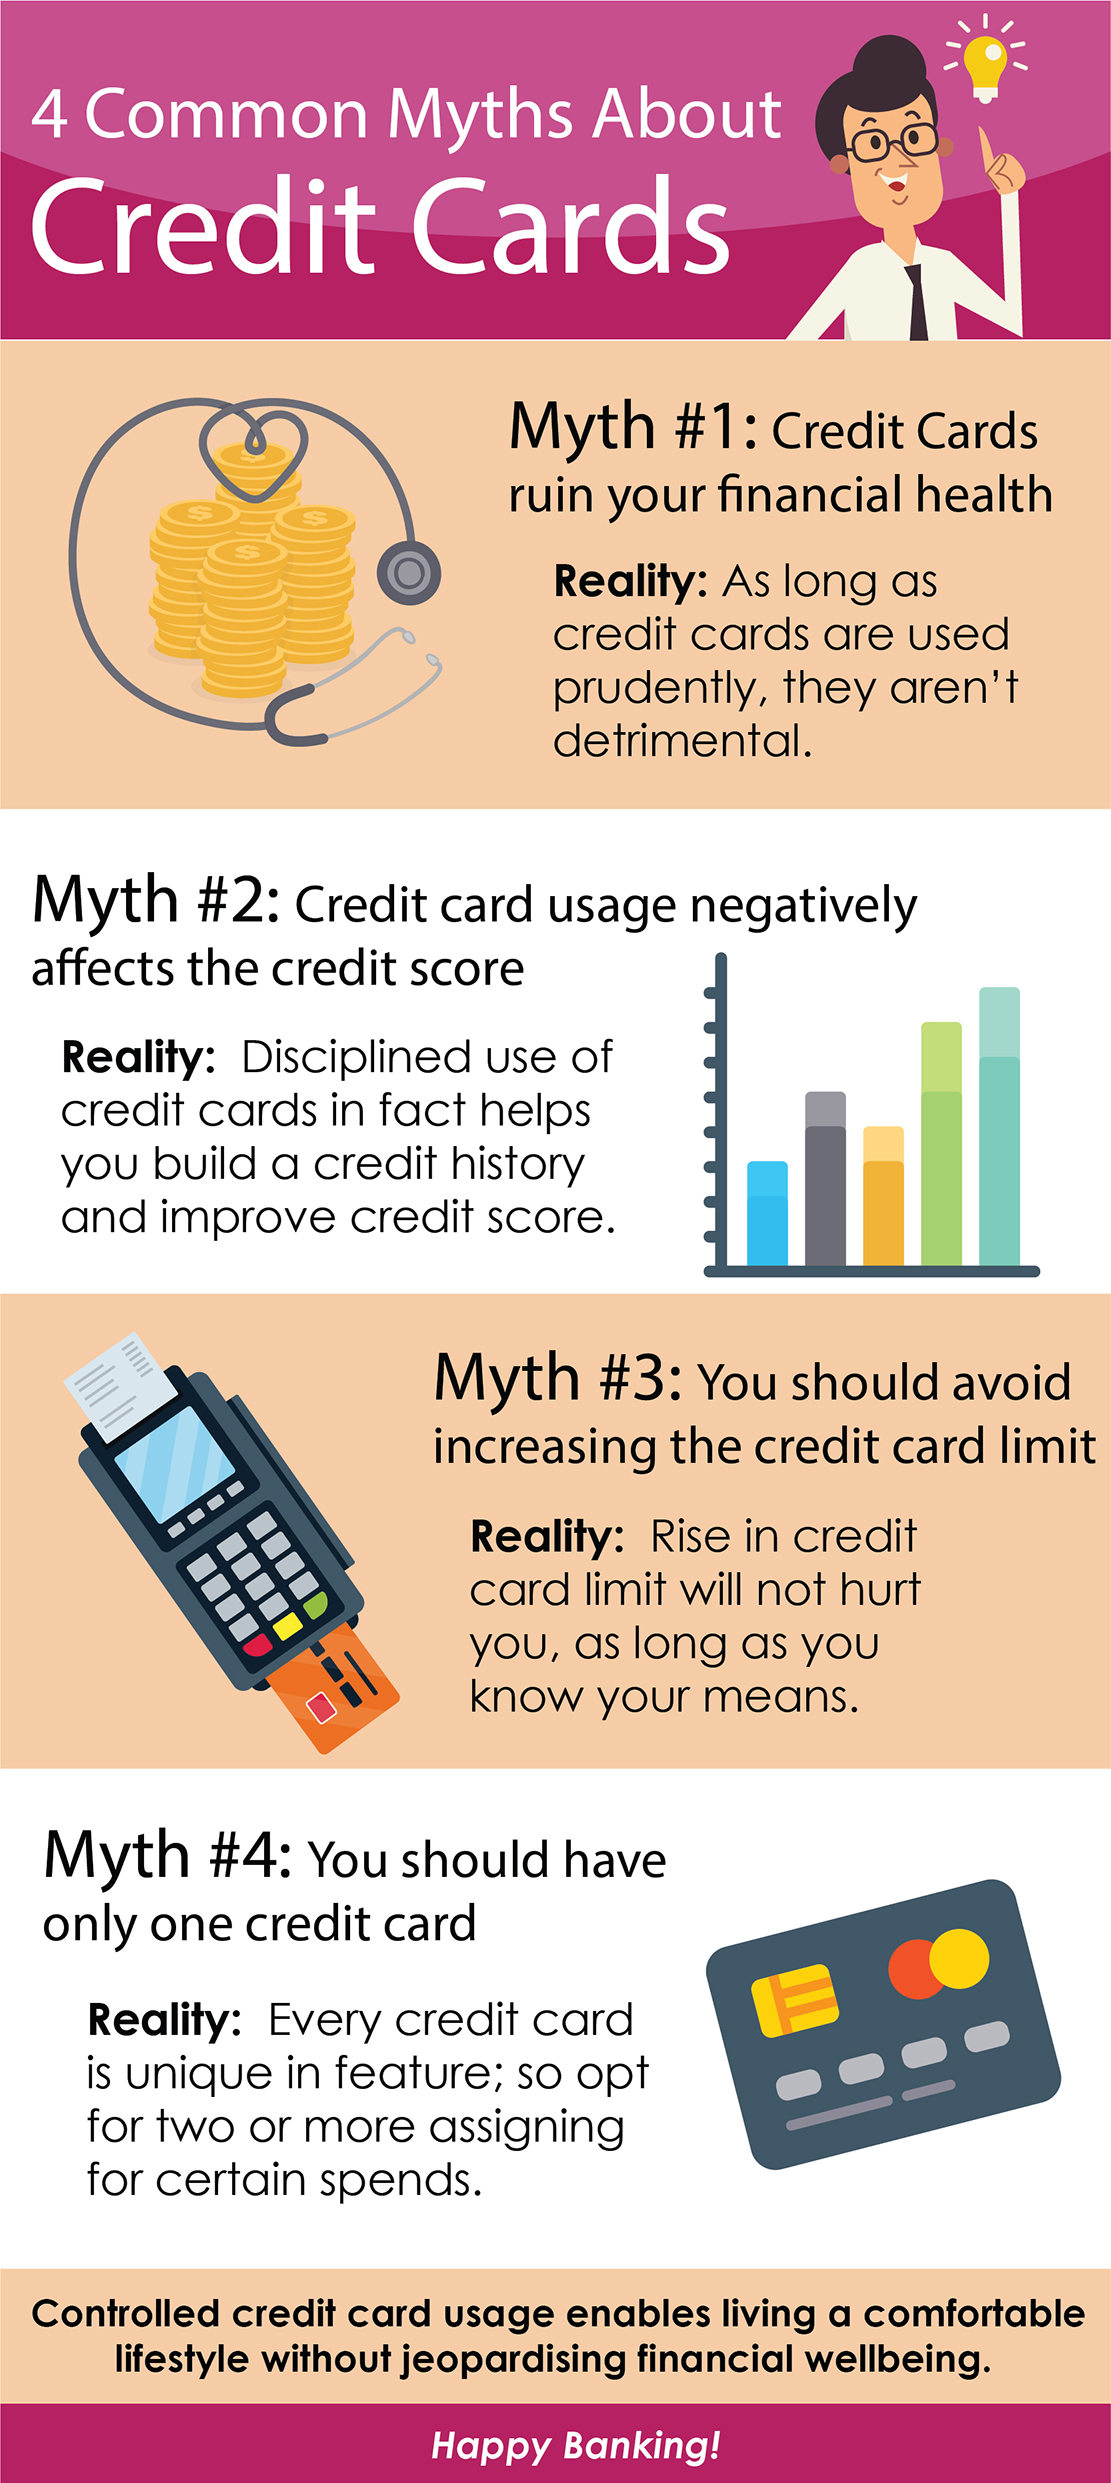 4 Common Myths About Credit Cards